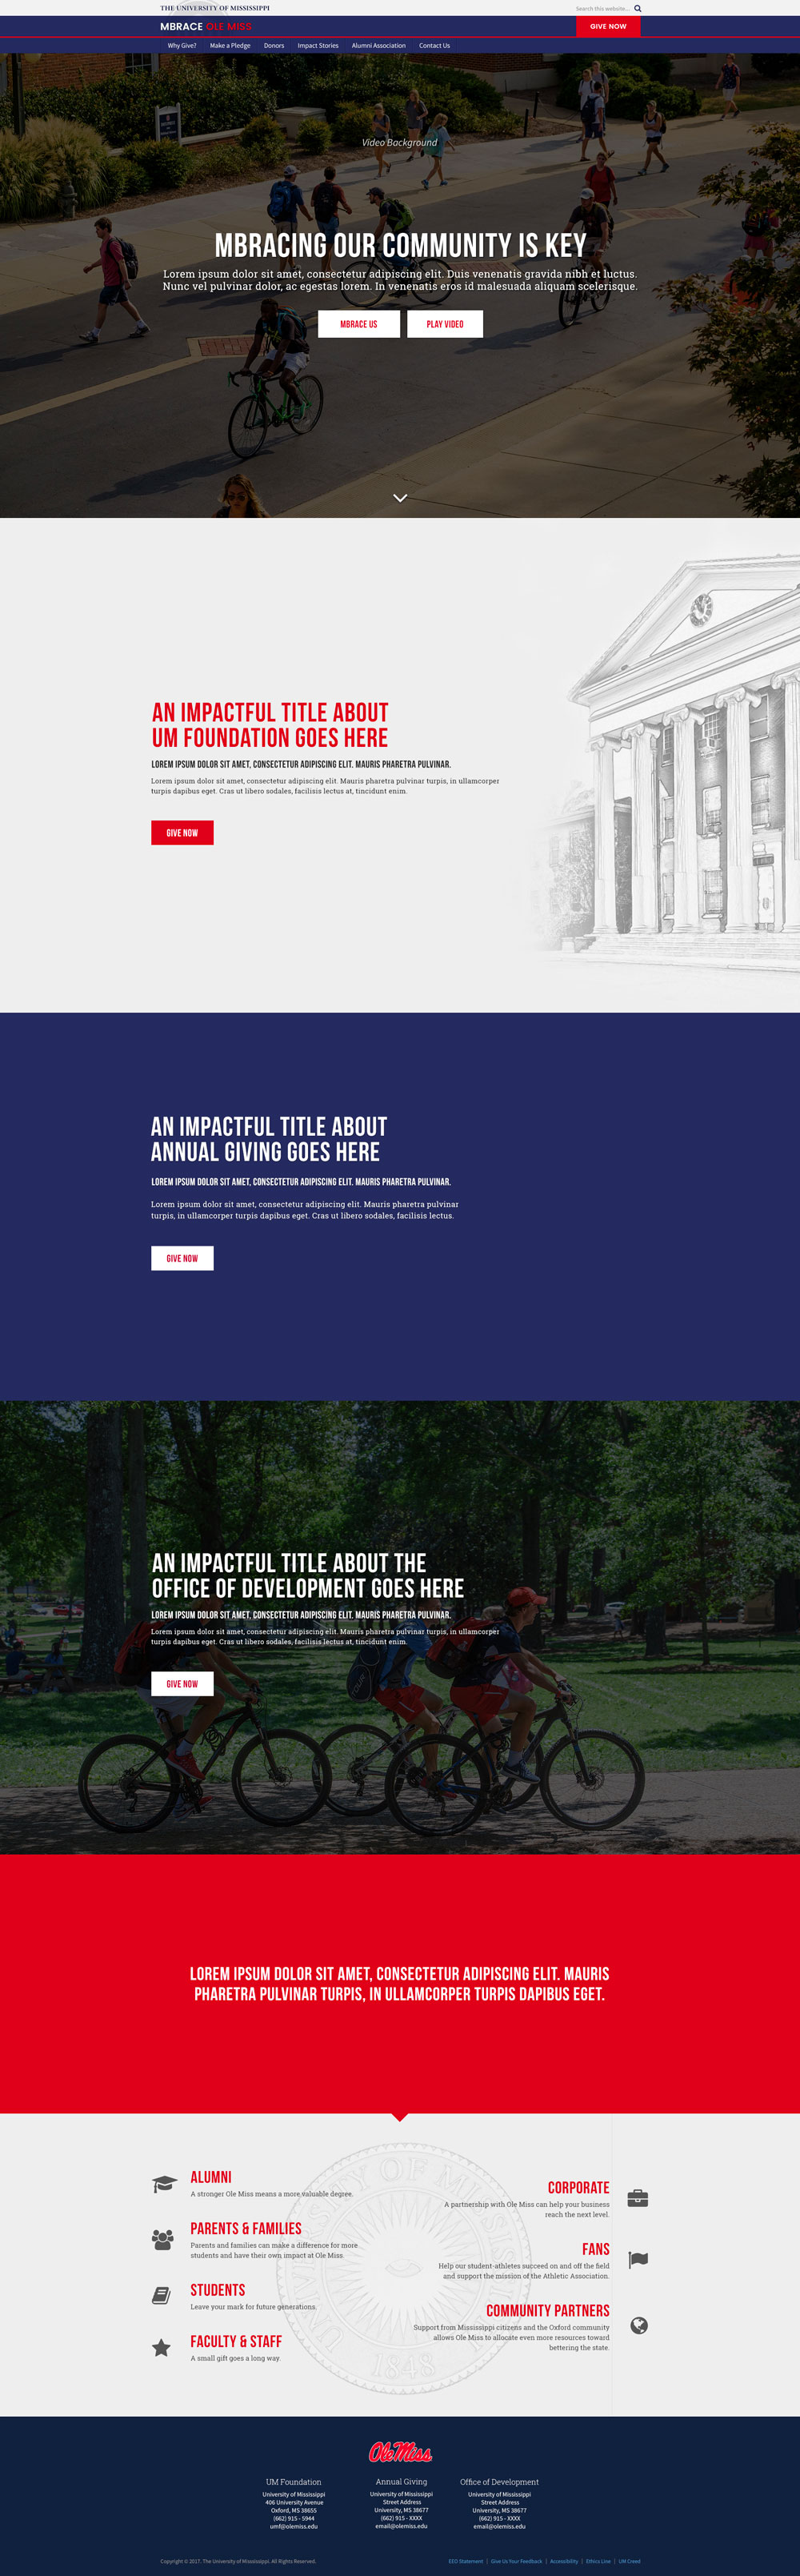 Office of Development home page mockup